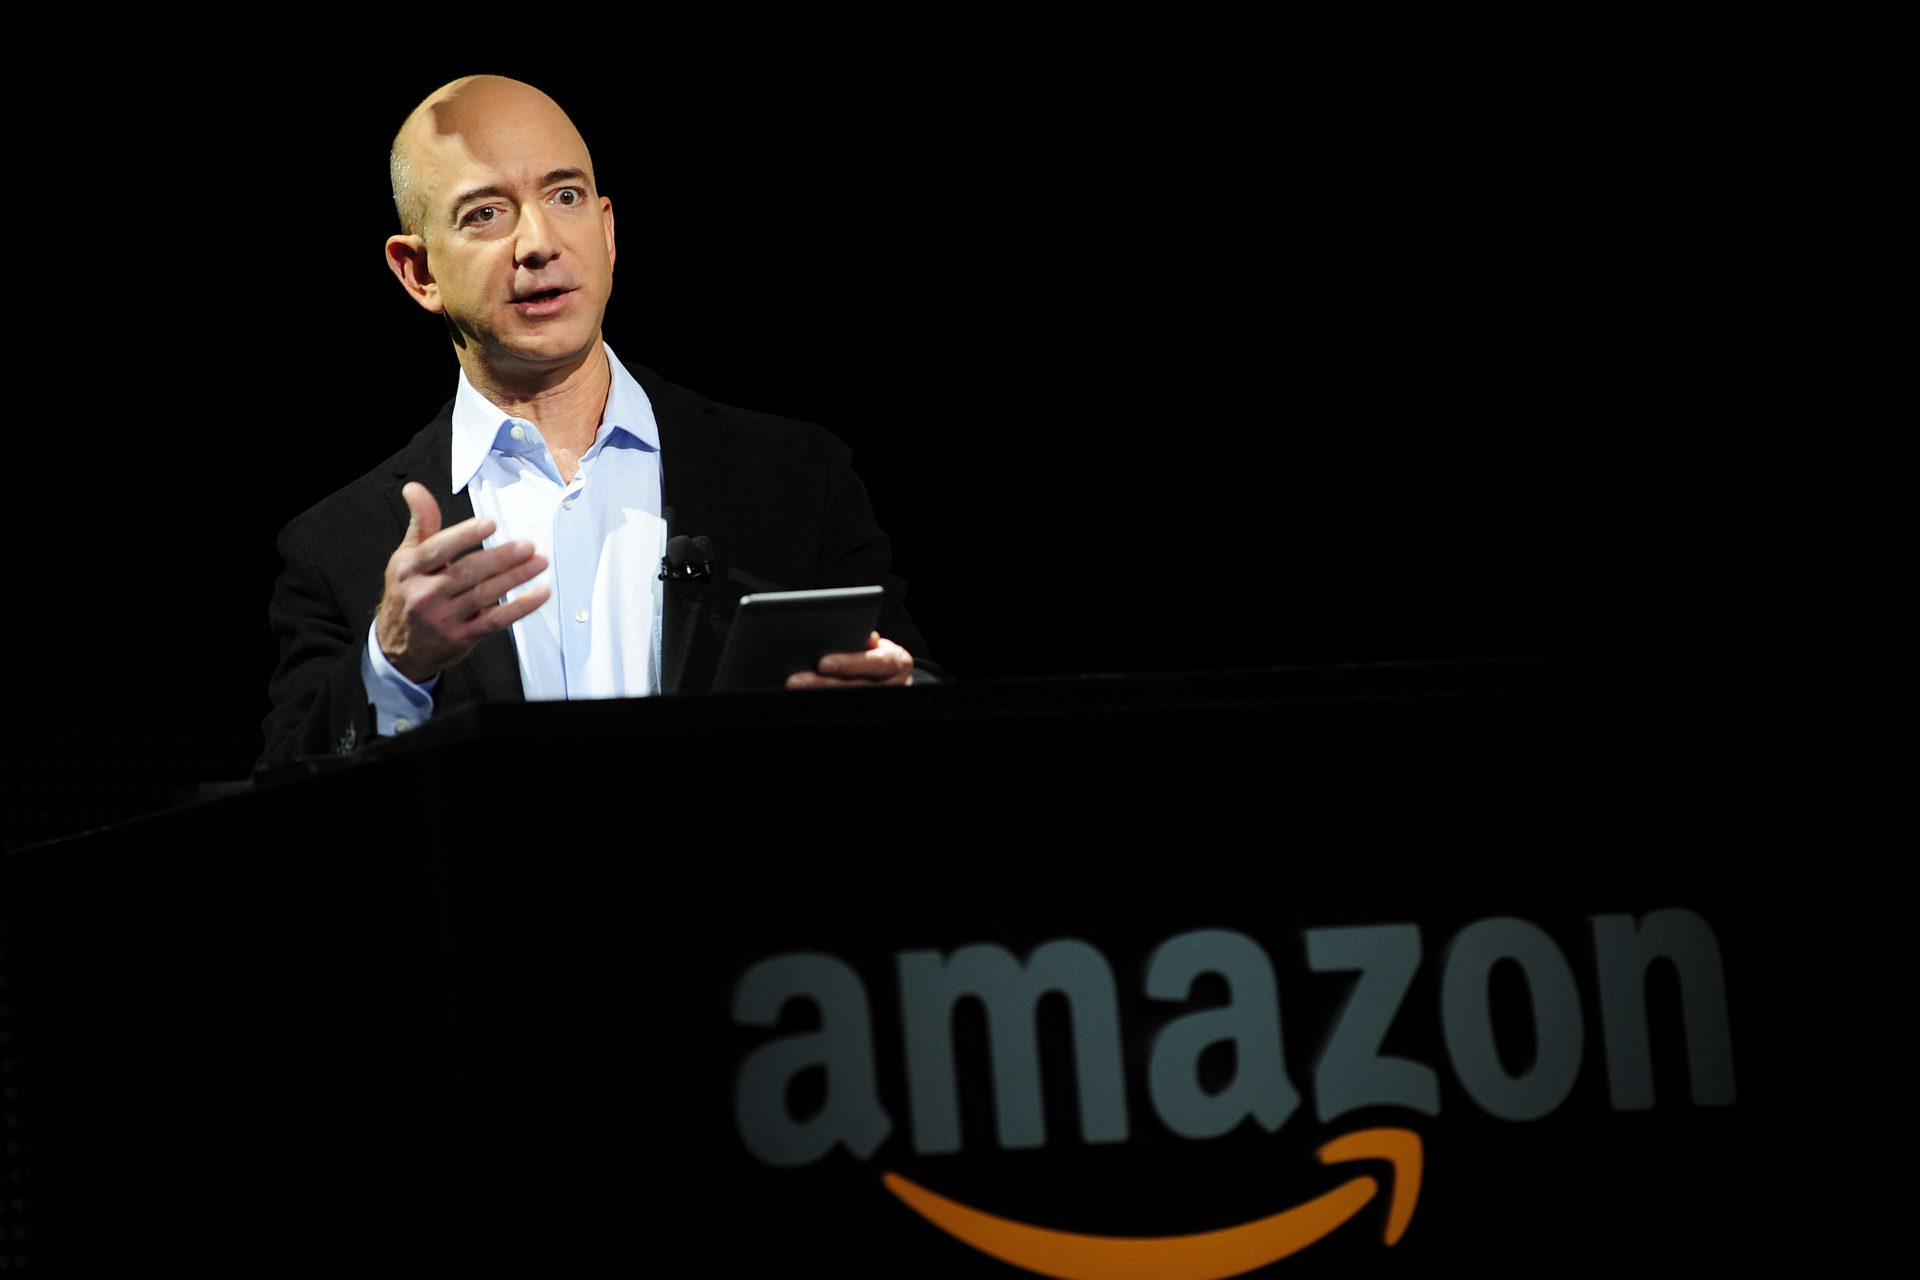 Amazon: what's in a name? The story of how Jeff Bezos named his company